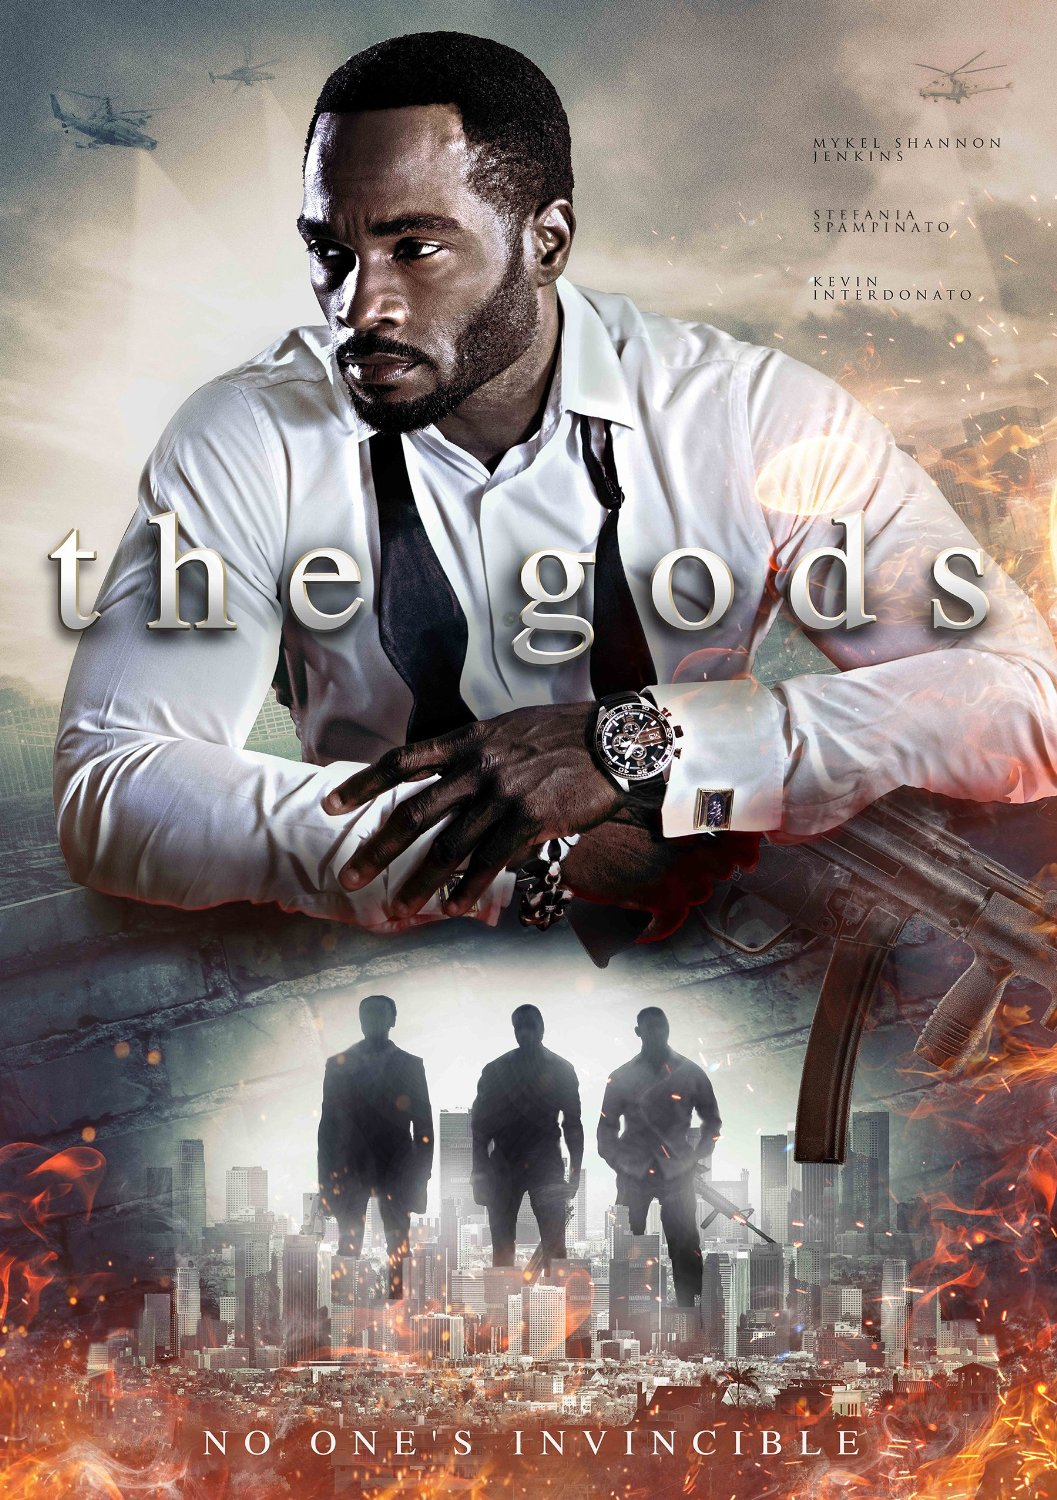 The Gods on FREECABLE TV